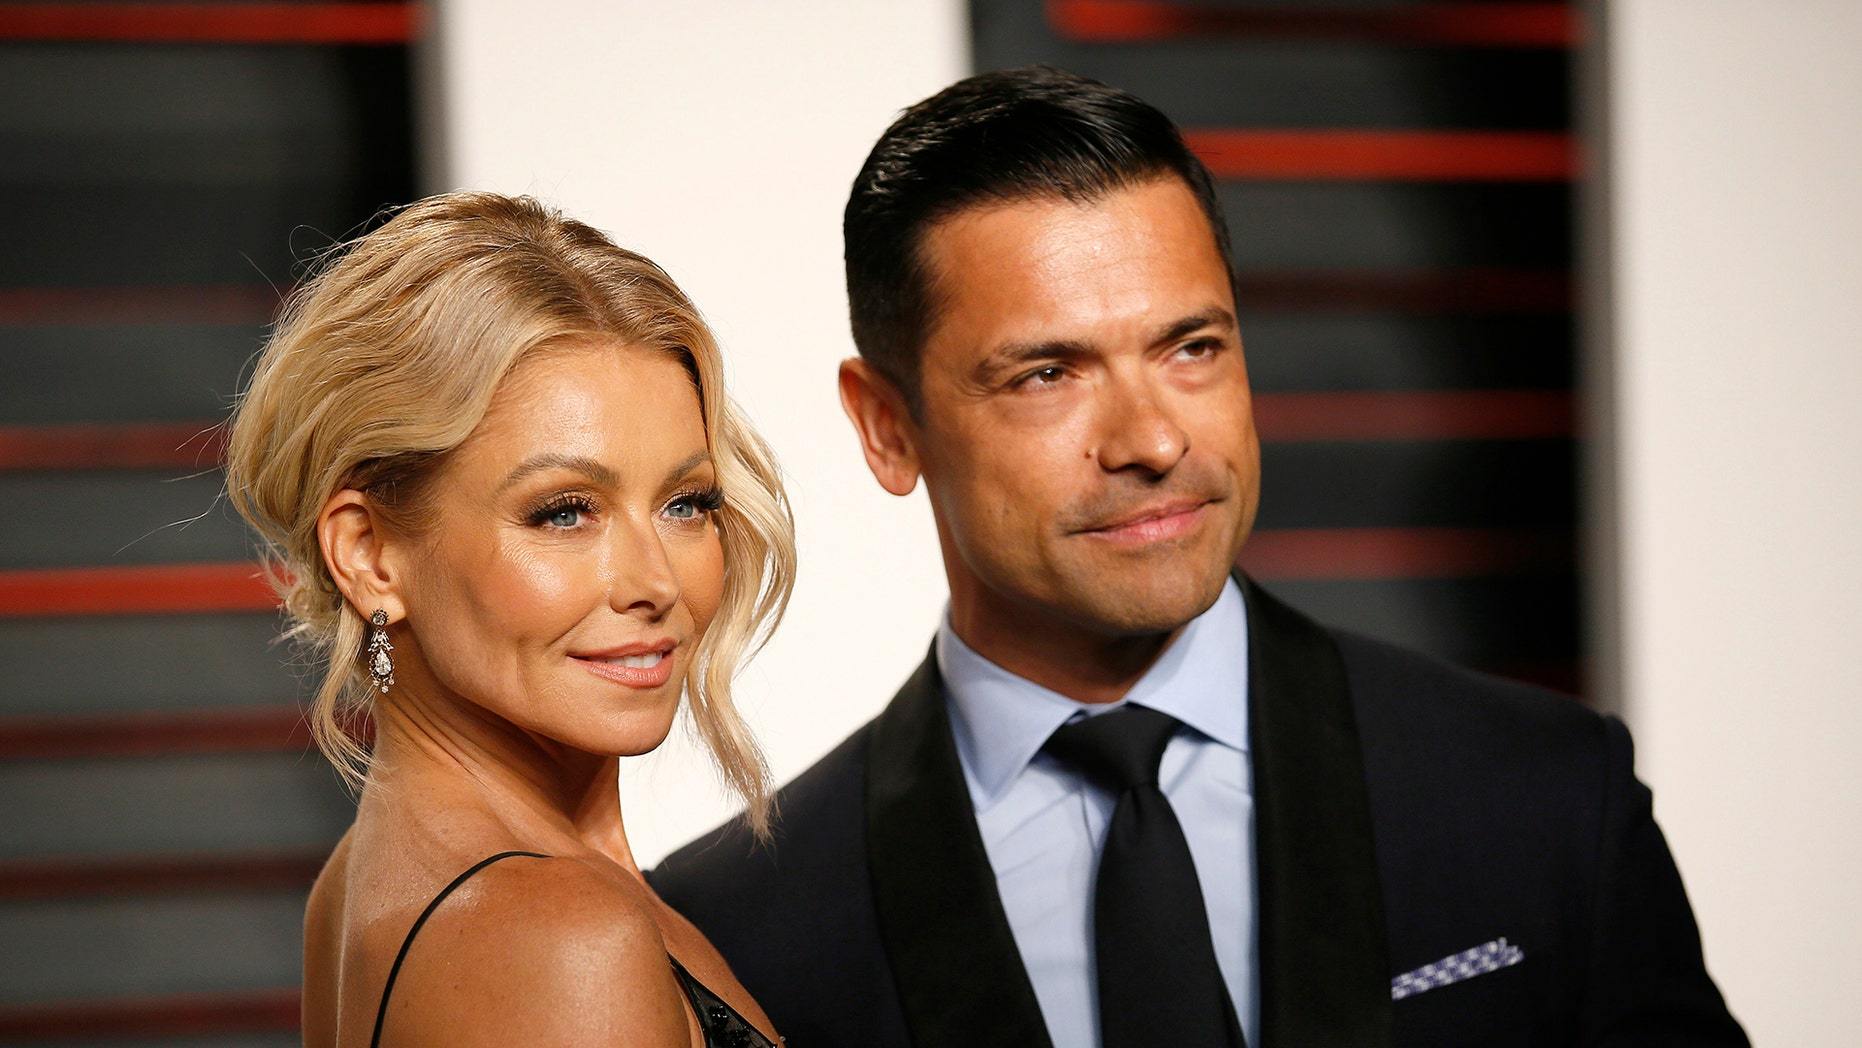 Actress Kelly Ripa and husband Mark Consuelos arrives at the Vanity Fair Oscar Party in Beverly Hills, California February 28, 2016.